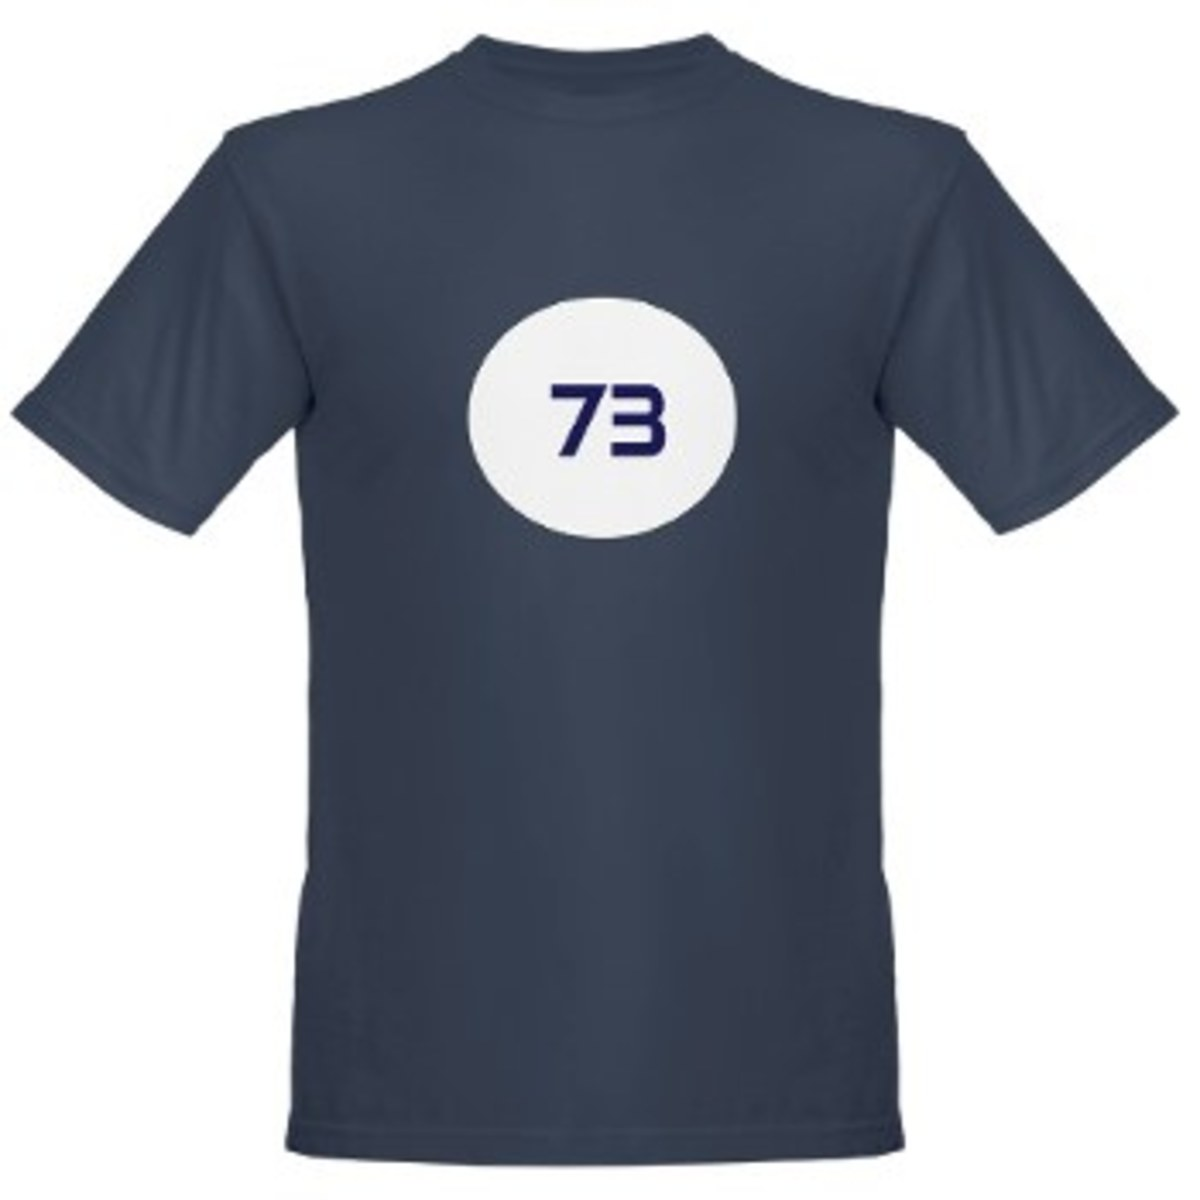 Sheldon's 73 Shirt can be purchased on CafePress